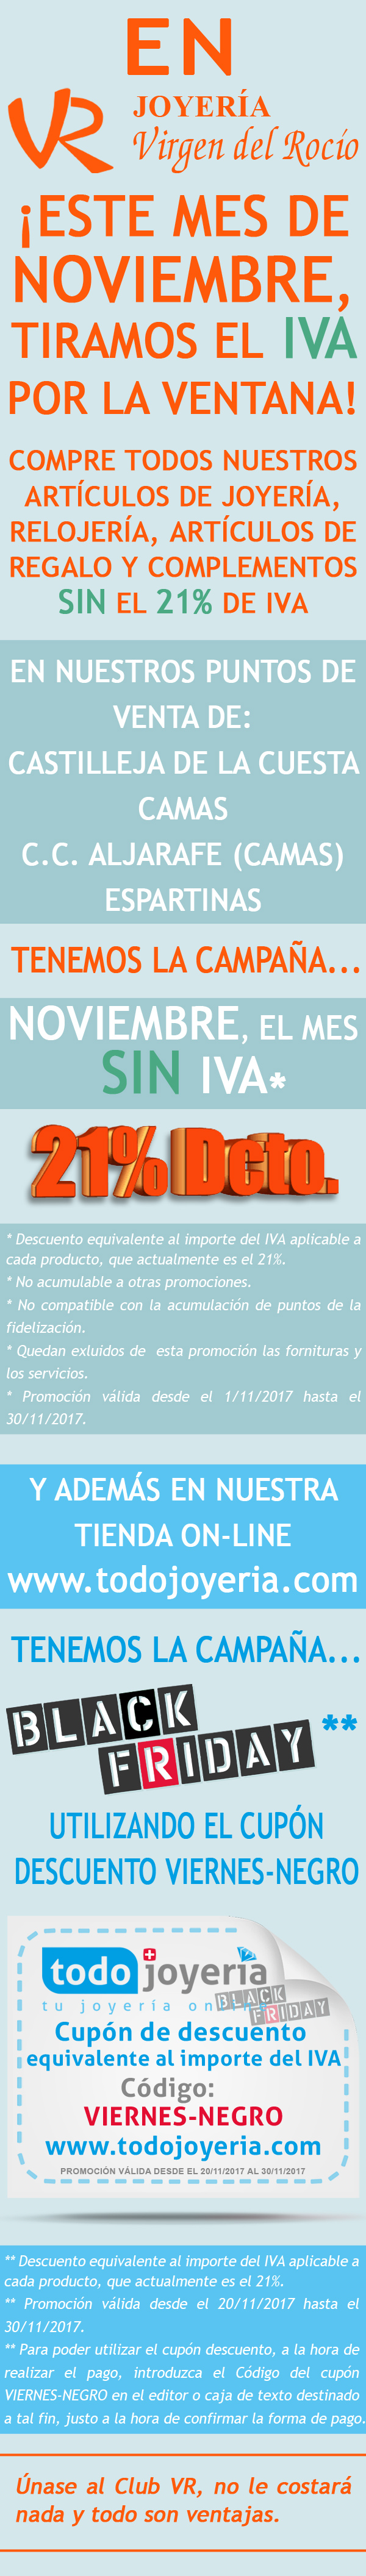 Noviembre 2017 mes sin iva y black friday joyer a virgen for Dia sin iva conforama 2017